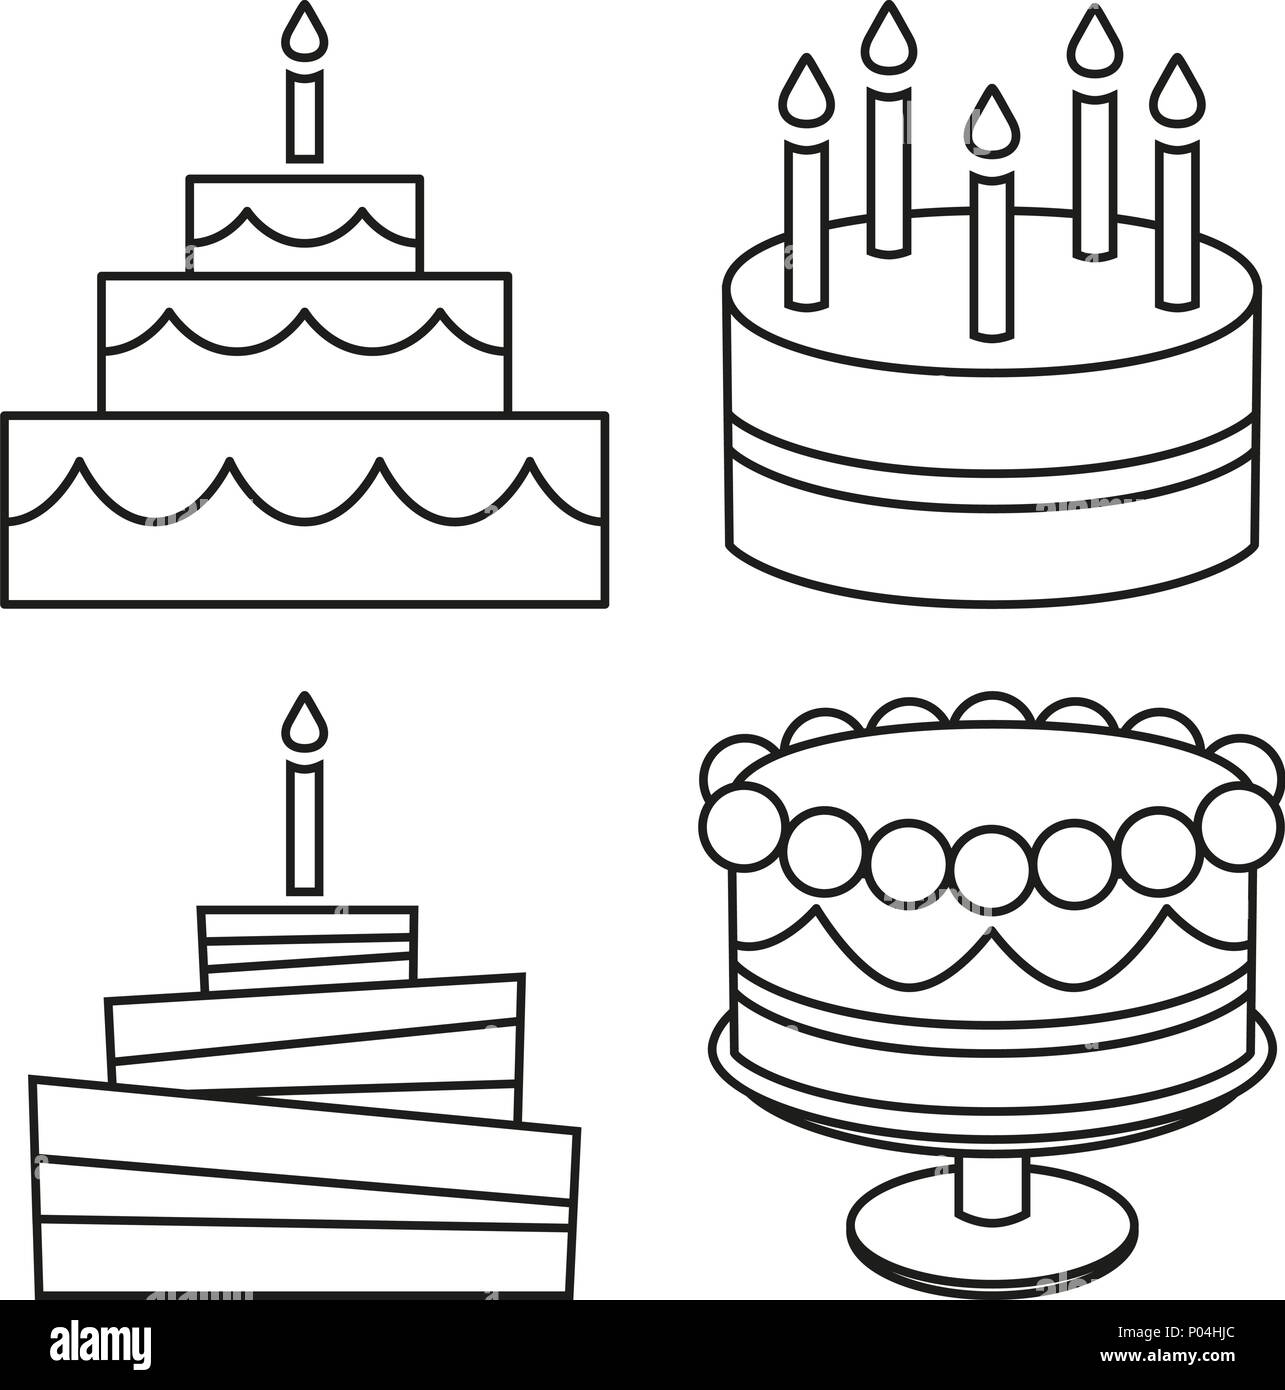 Pleasing Line Art Black And White Birthday Cake Set Stock Vector Art Funny Birthday Cards Online Alyptdamsfinfo